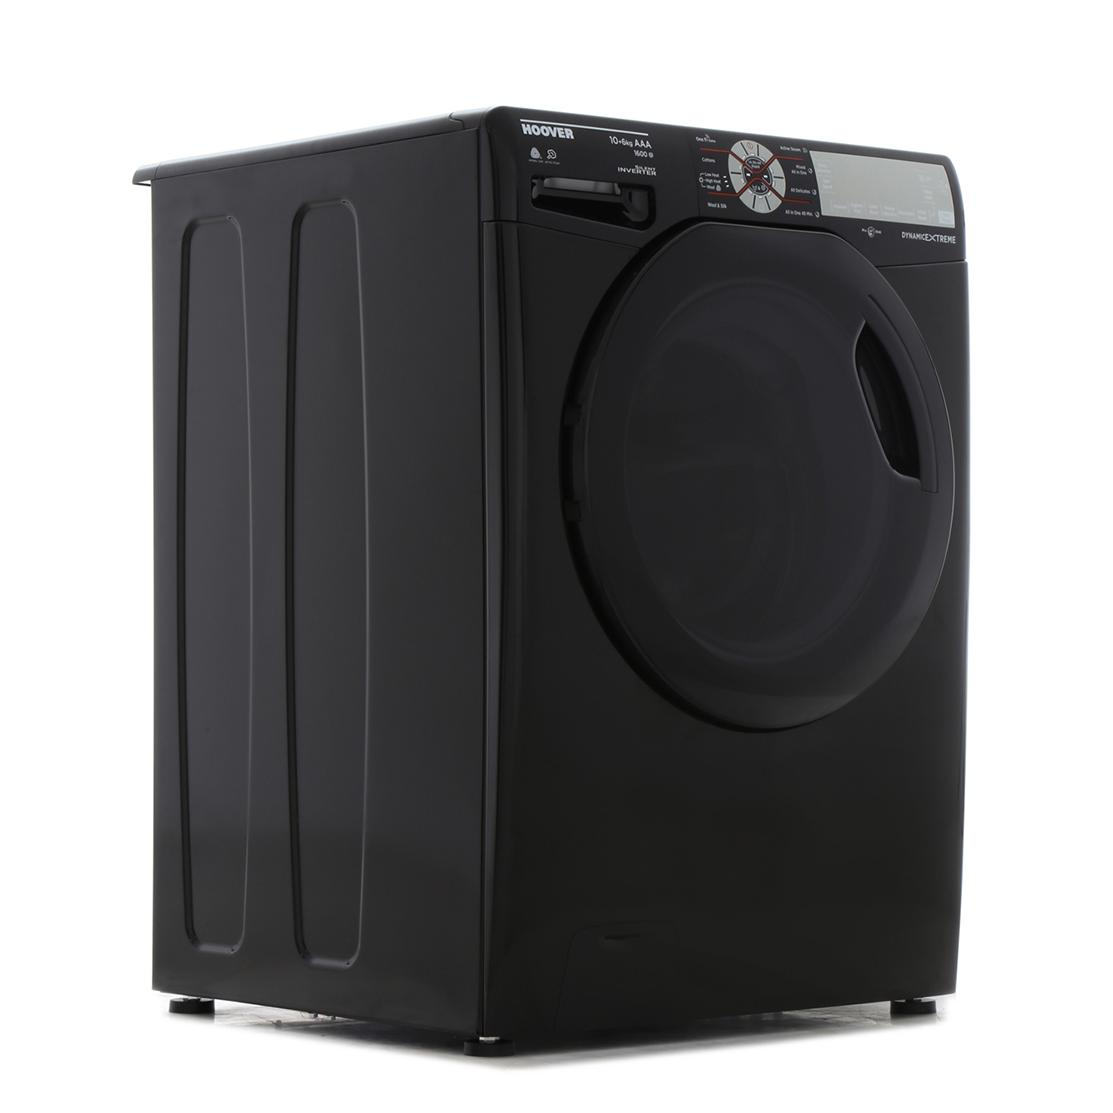 Hoover WDWFT6106AHB Washer Dryer